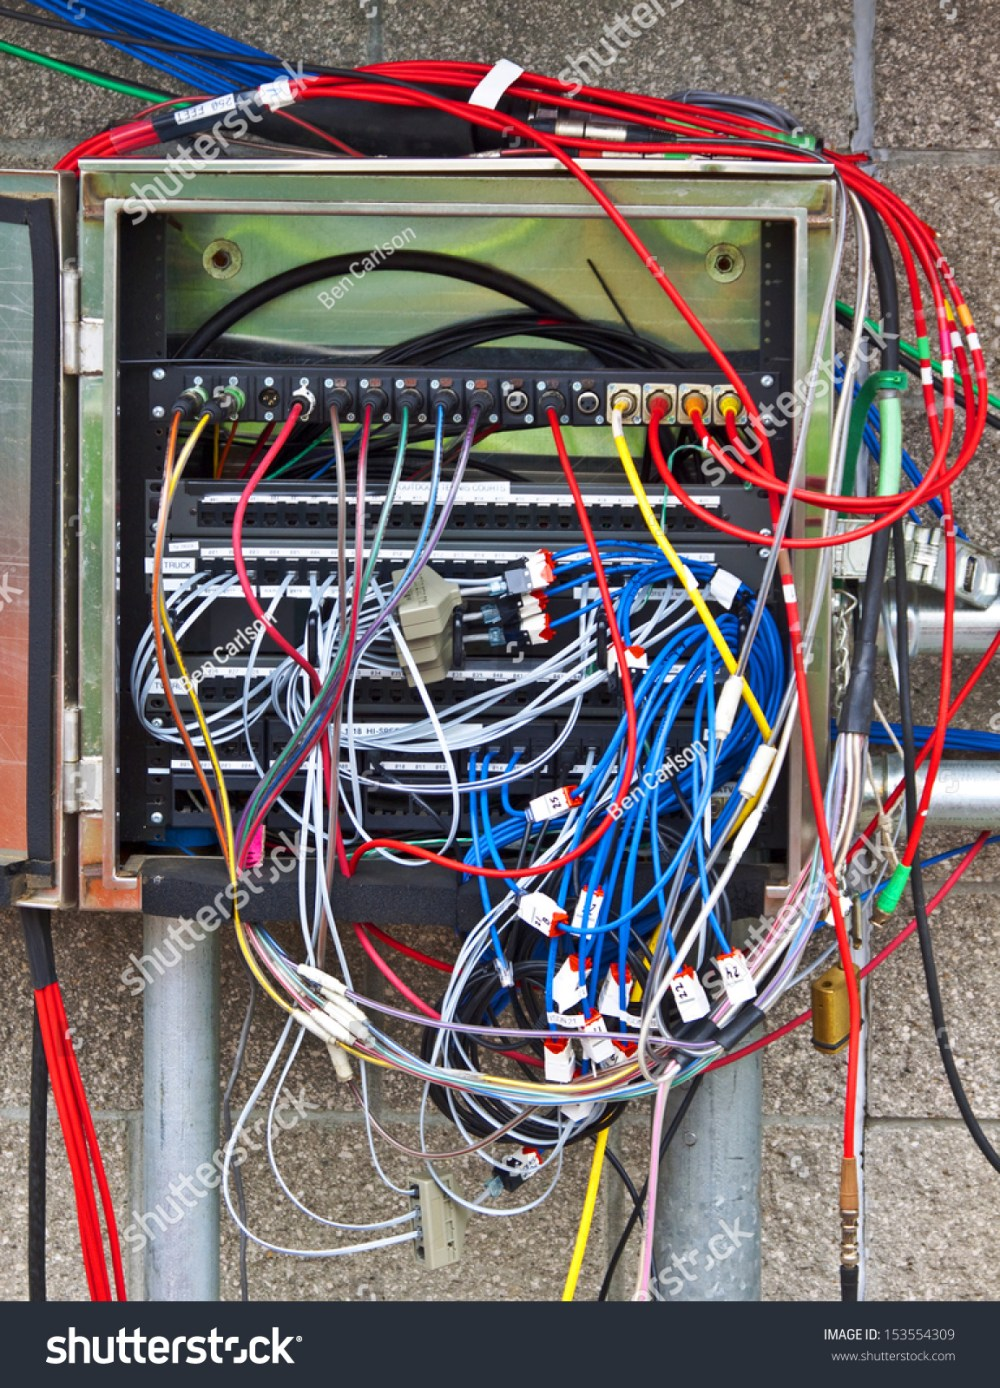 medium resolution of where is the wiring diagram this box has many more video audio wires than